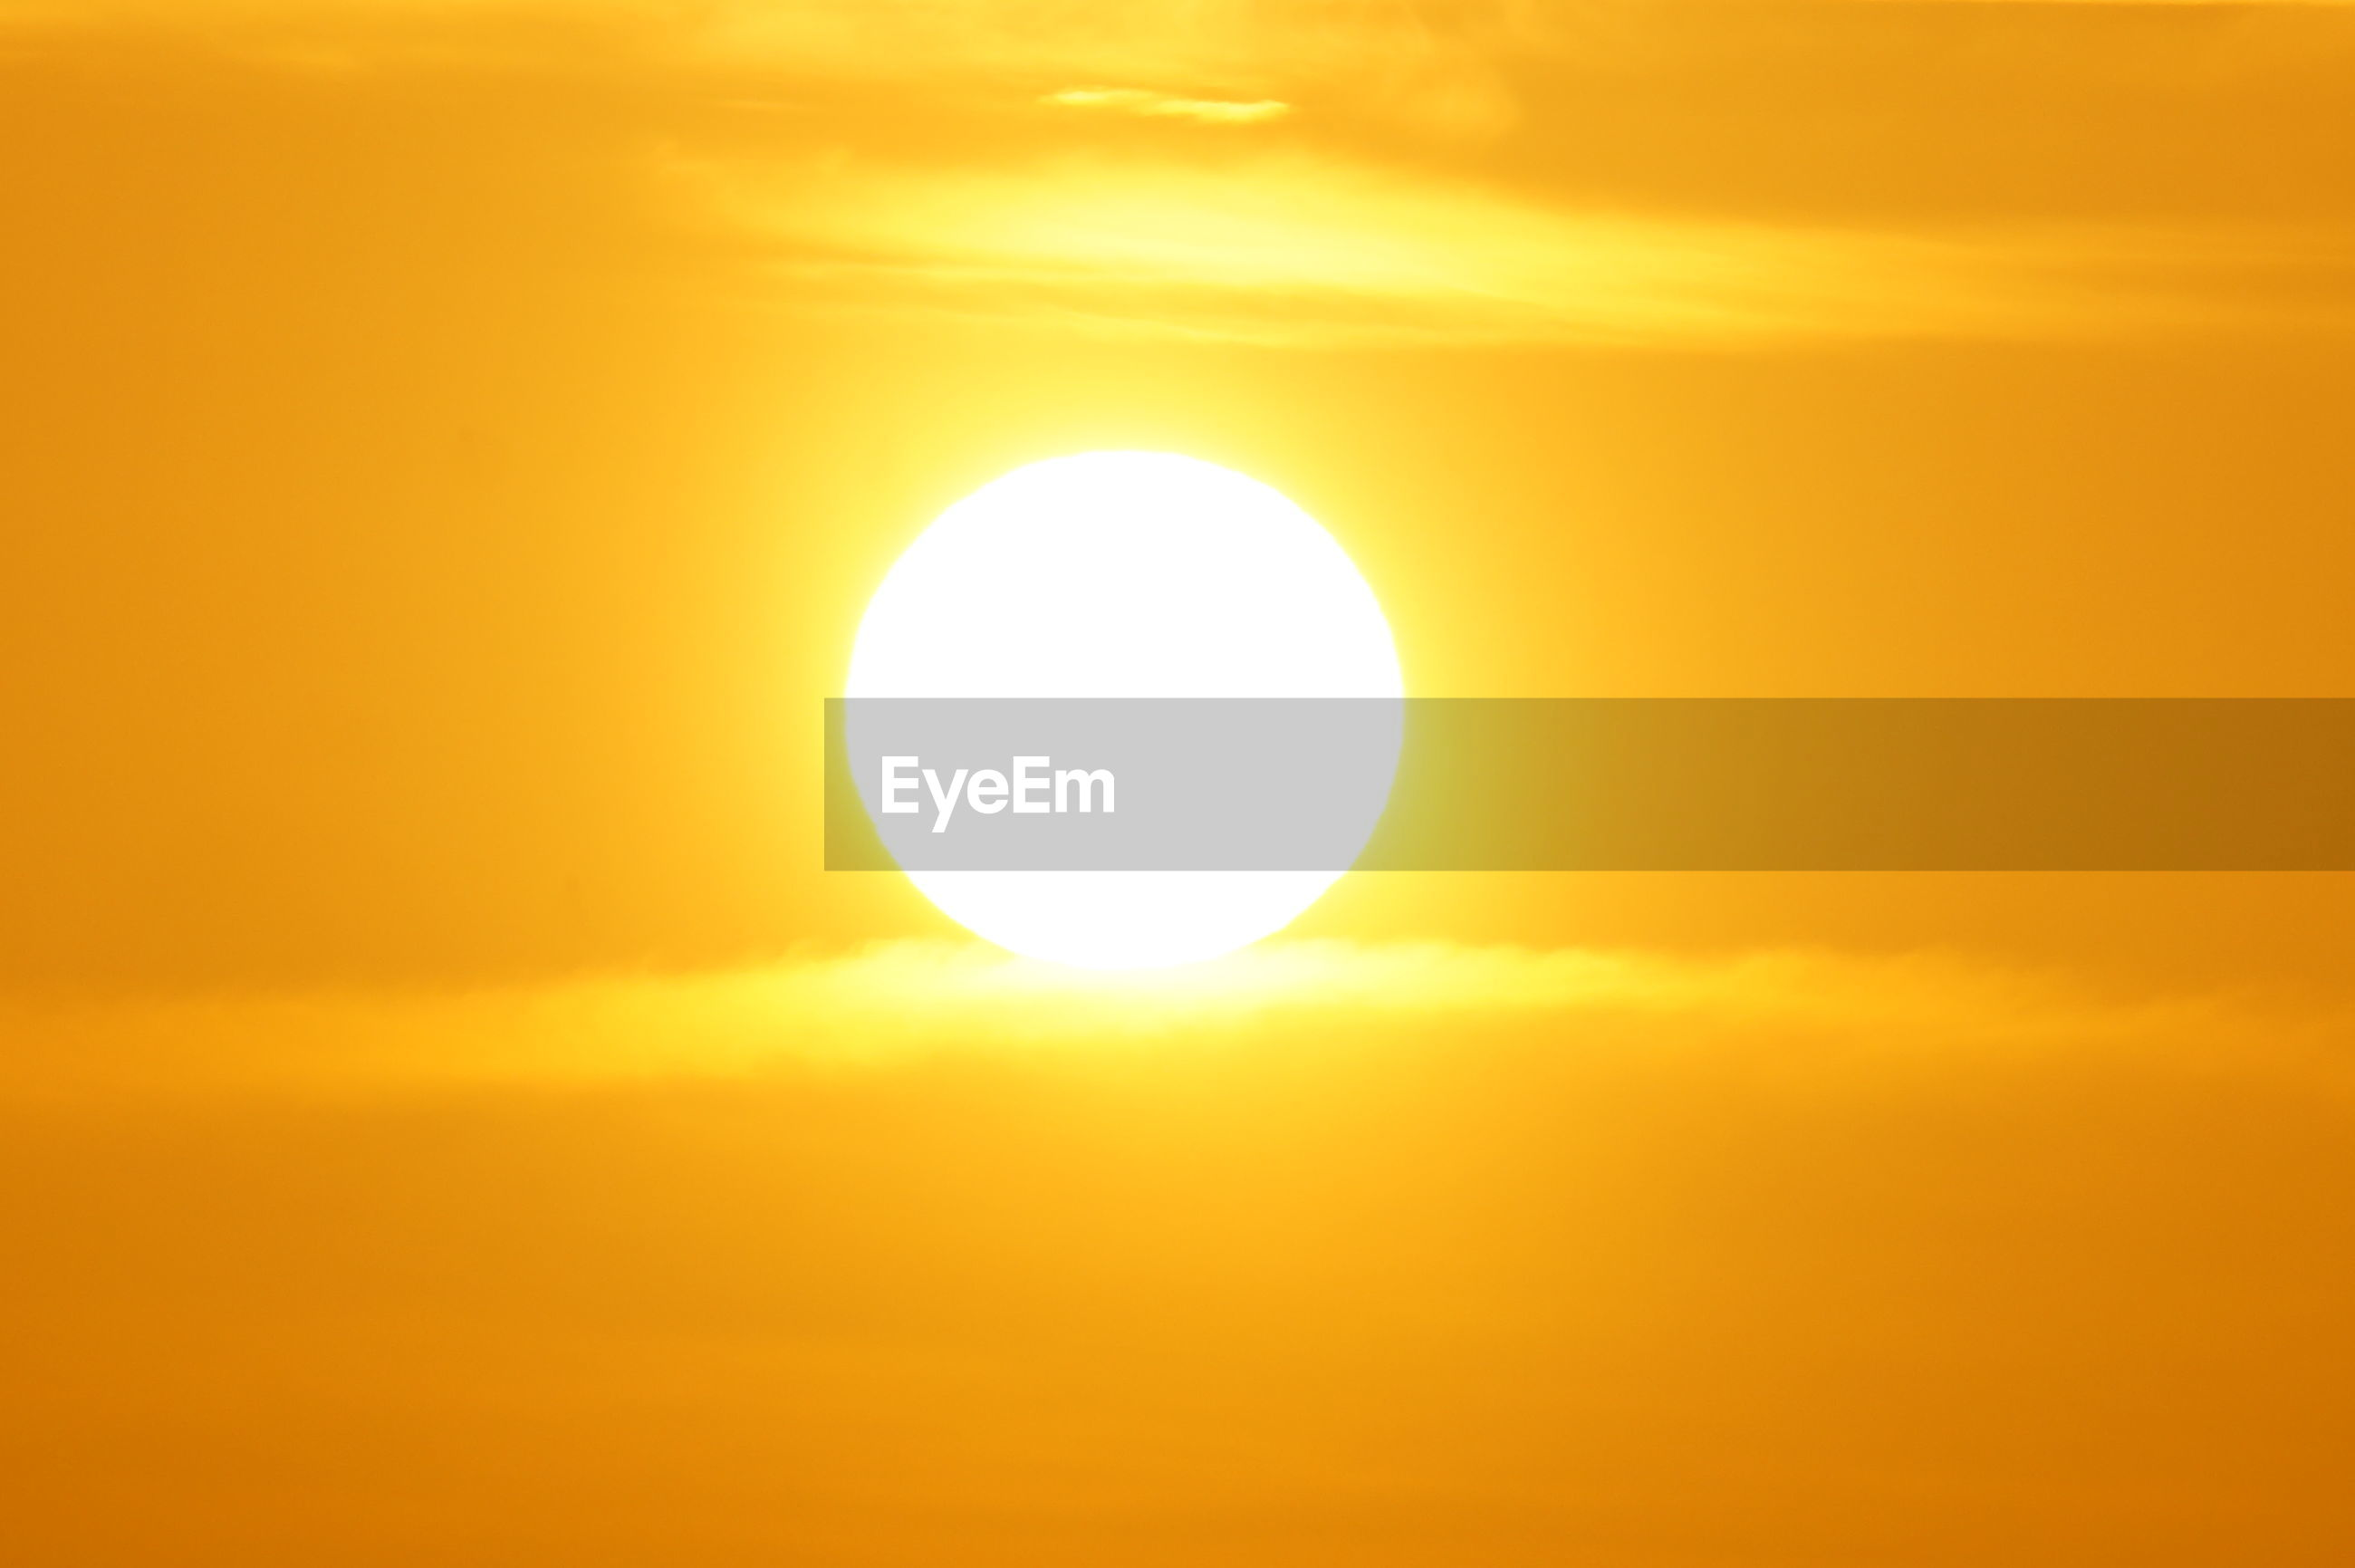 sun, yellow, sunset, orange color, beauty in nature, circle, sky, scenics, cloud - sky, sunlight, nature, bright, outdoors, low angle view, technology, no people, silhouette, solar eclipse, day, close-up